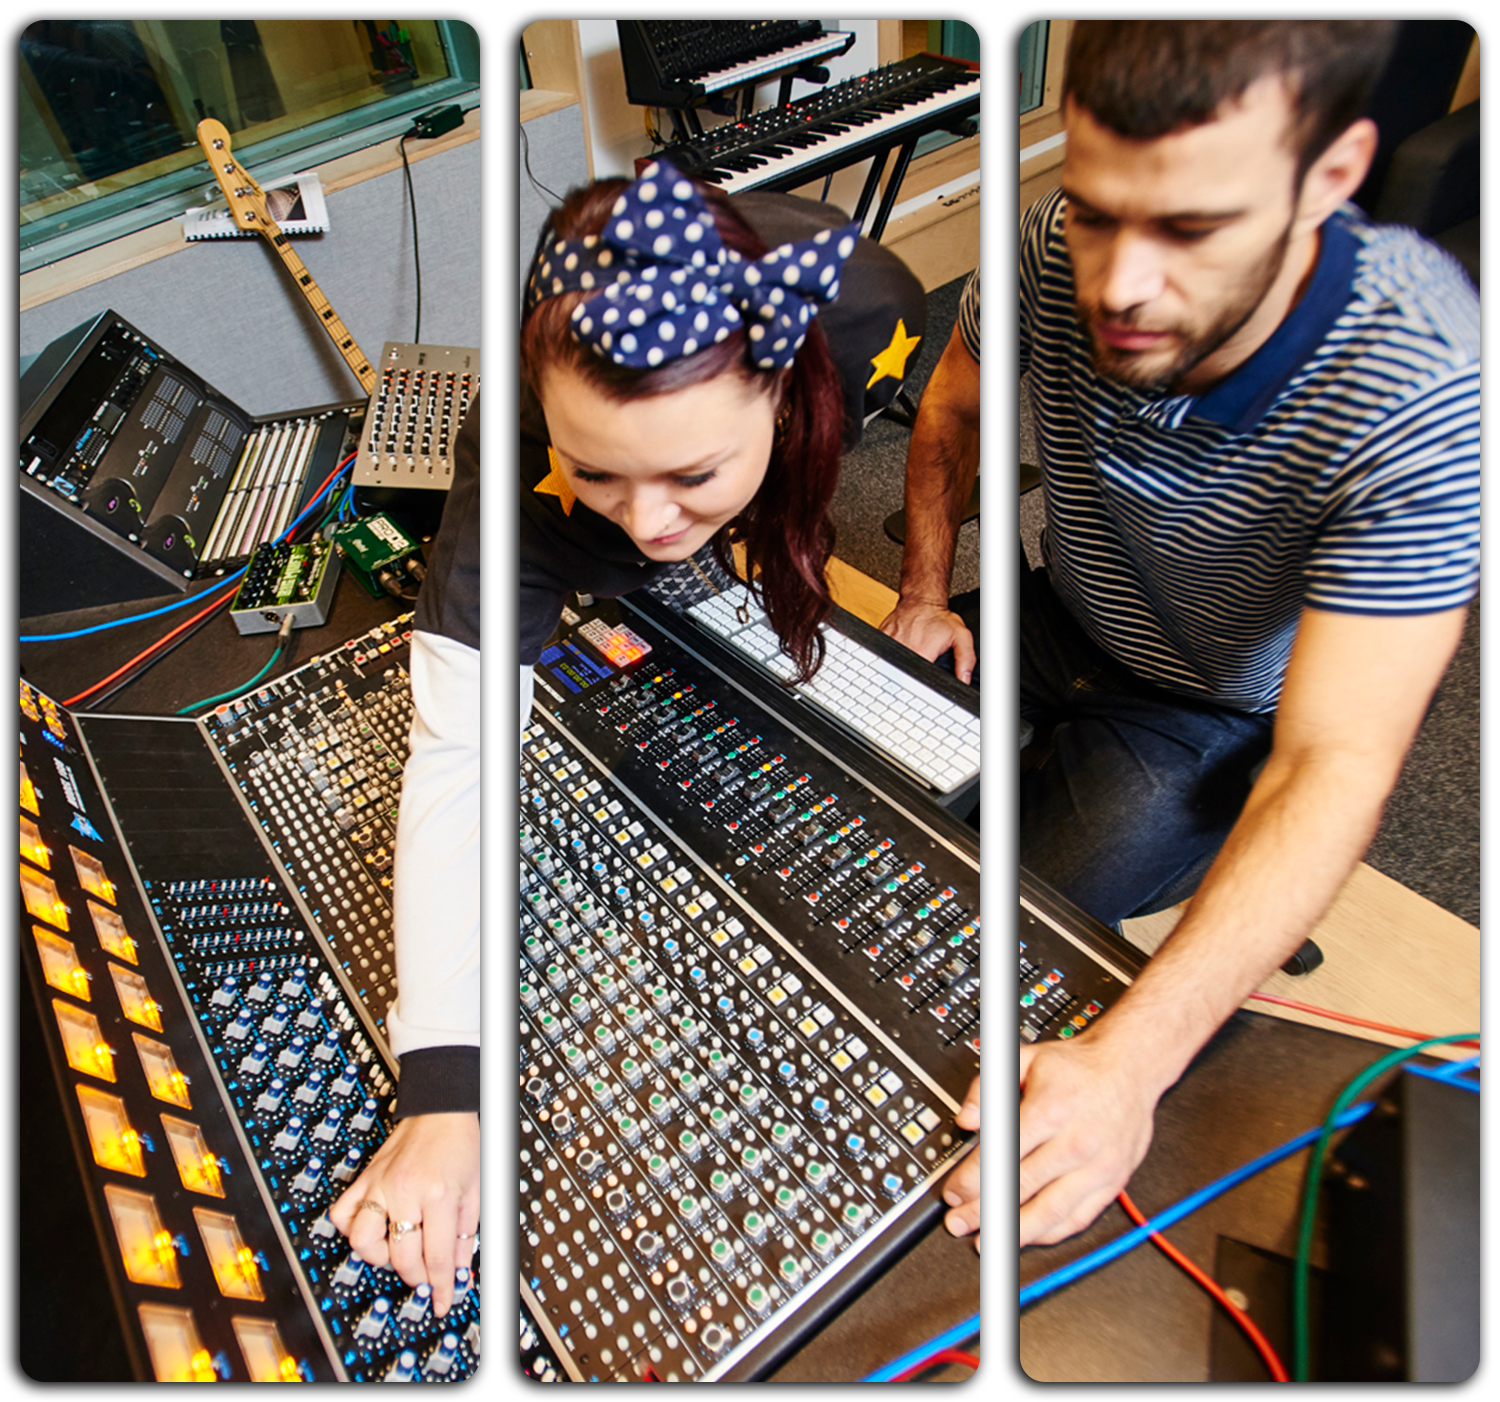 Degree courses in Music Production and Audio Technology | Join us at our next open day on 13th April 2019  to learn more about our music degree courses in Bristol